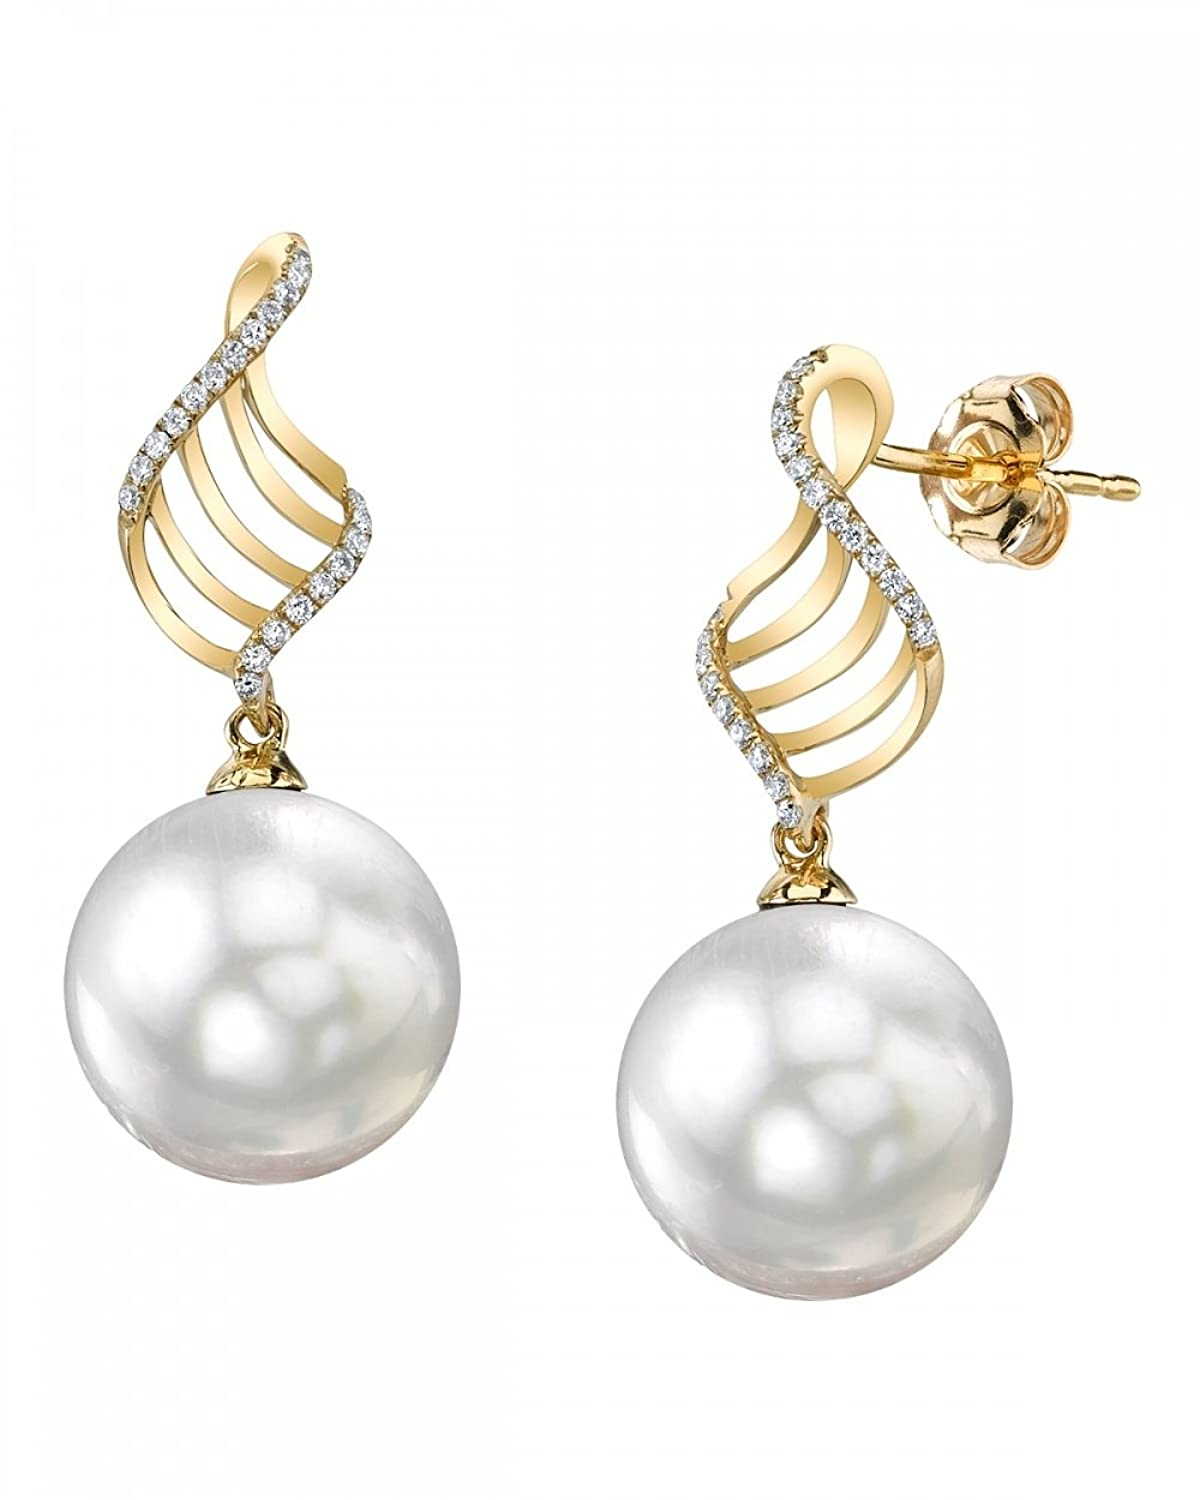 14K Gold White South Sea Cultured Pearl & Diamond Jenny Earrings